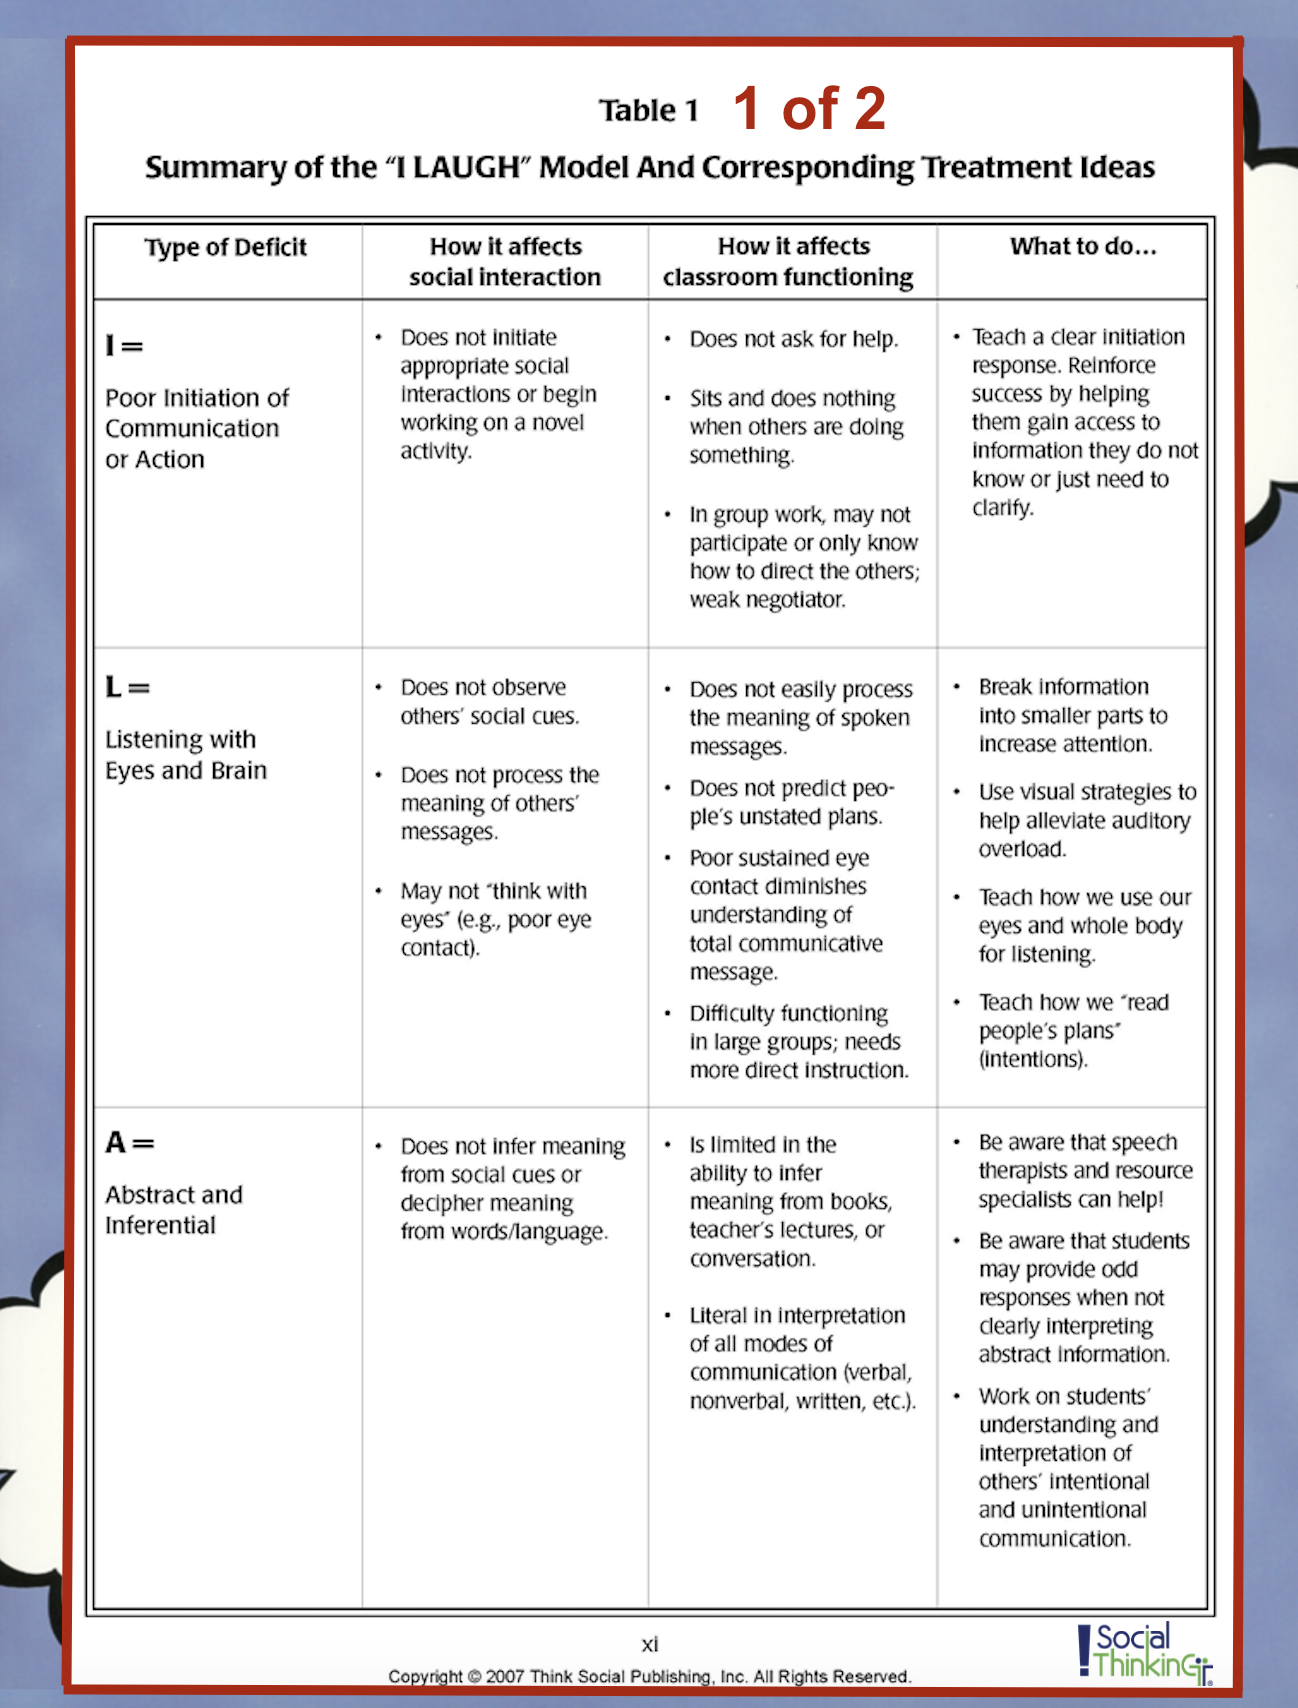 Summary Of Ilaugh Model And Corresponding Treatment Ideas 1 Of 2 From Thinking About You